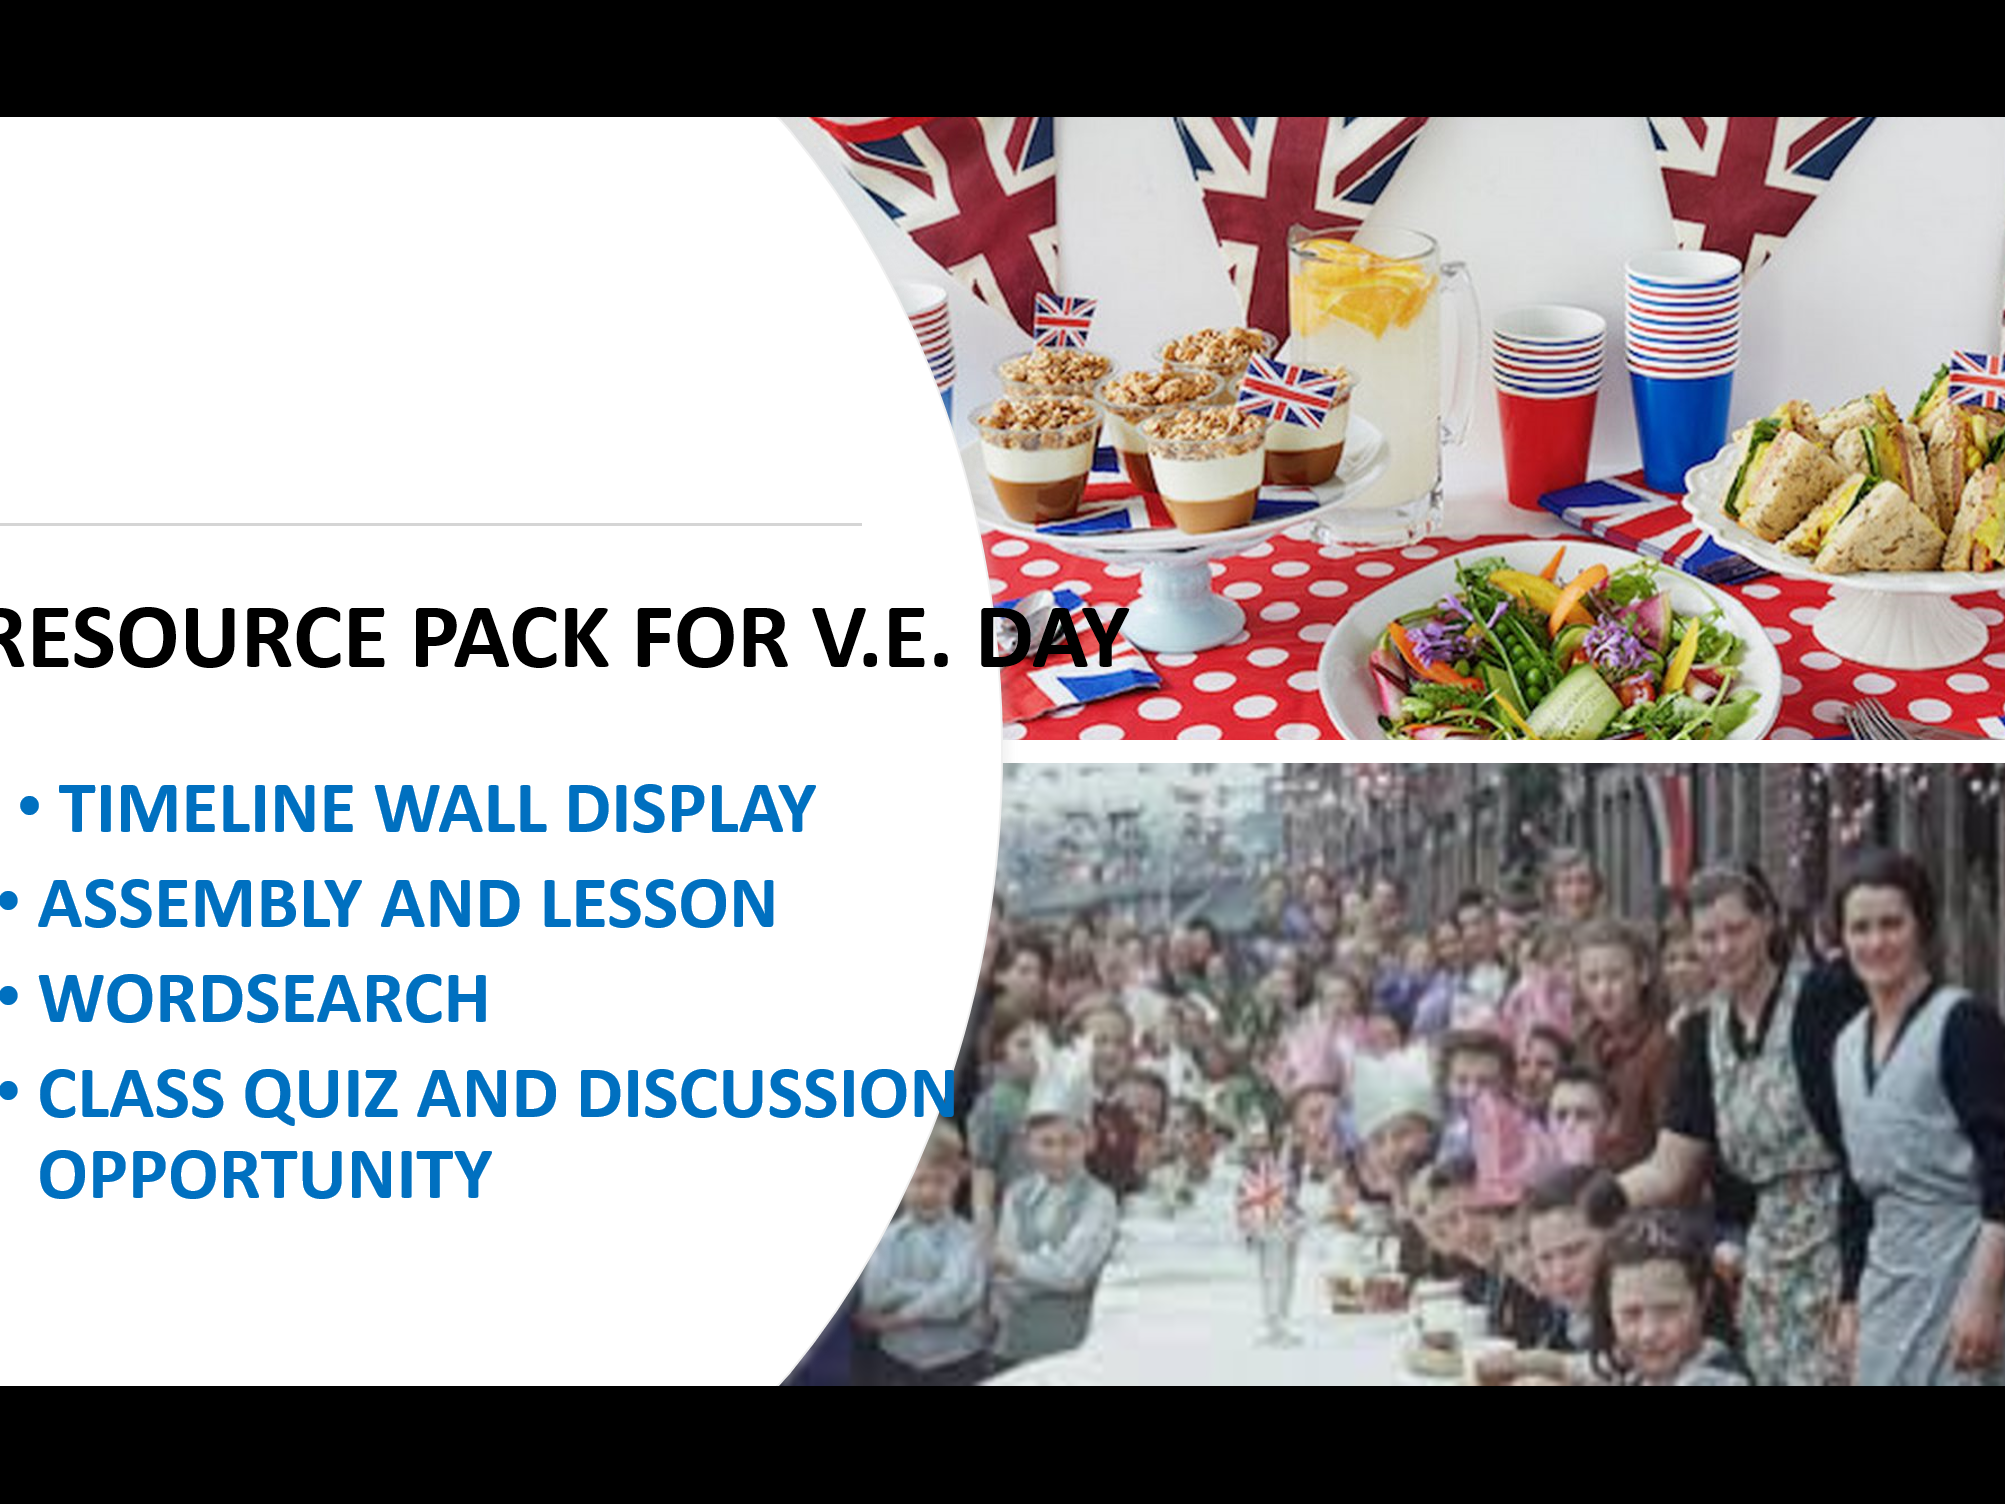 ASSEMBLY; LESSON; QUIZZES; WORDSEARCHES AND TIMELINES FOR VE DAY